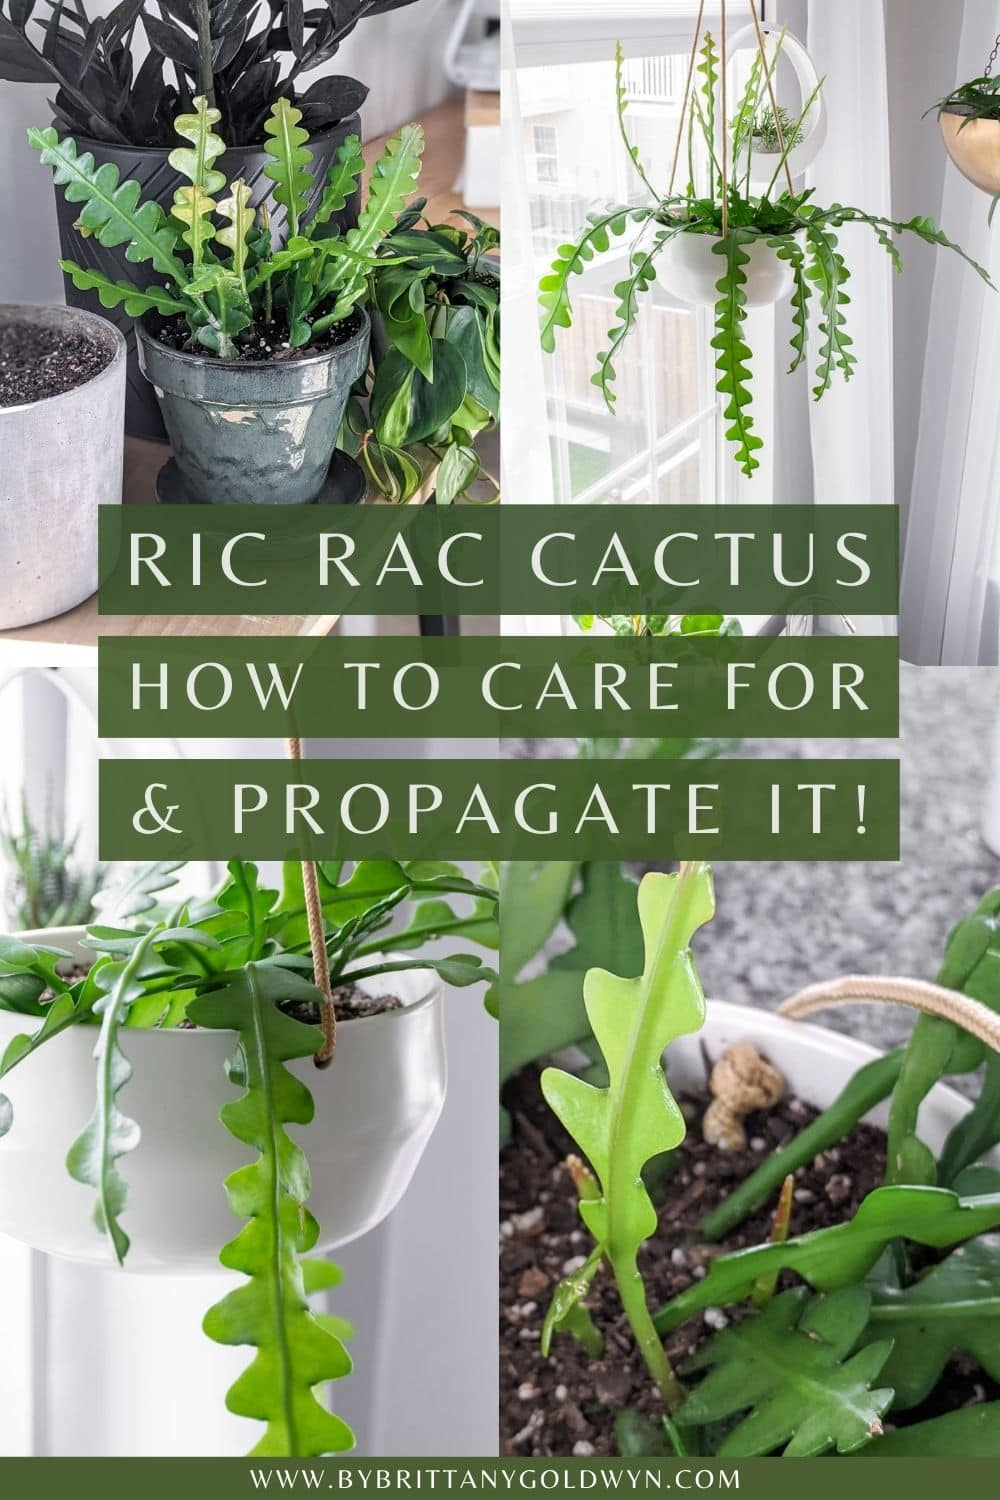 images of a ric rac cactus and text overlay saying how to care for a propagate a ric rac cactus